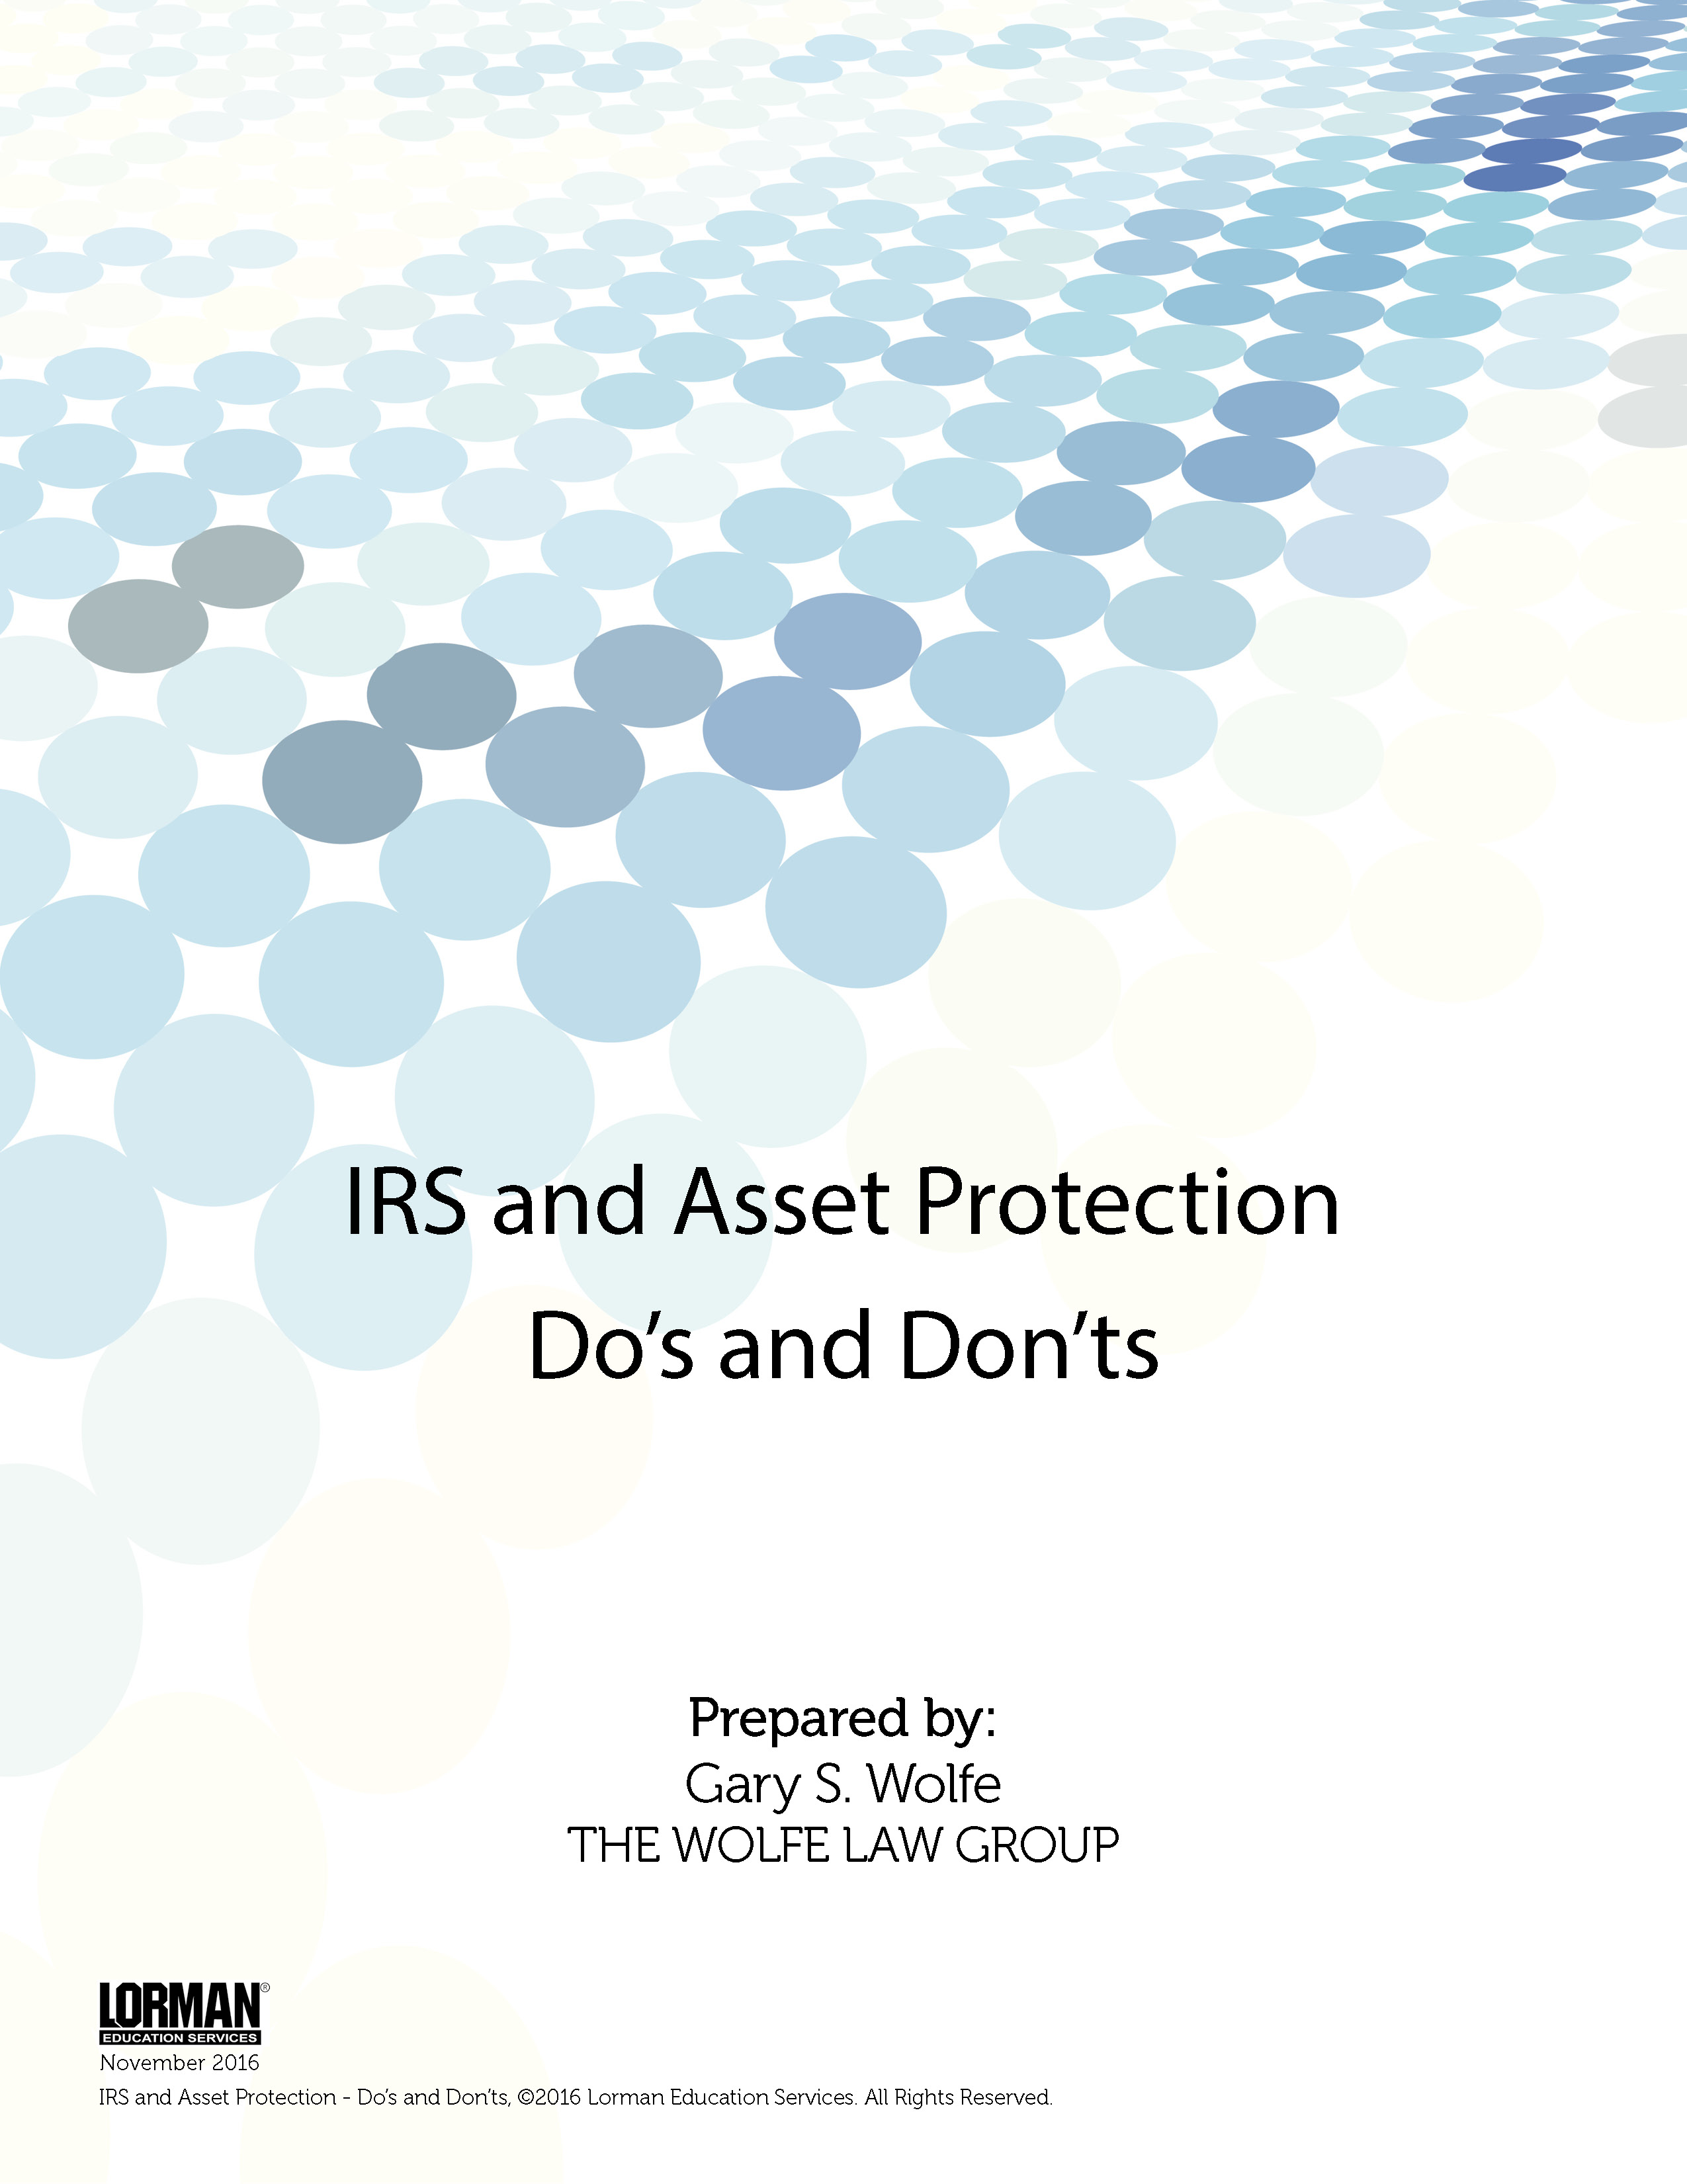 IRS and Asset Protection - DOs and DON'Ts